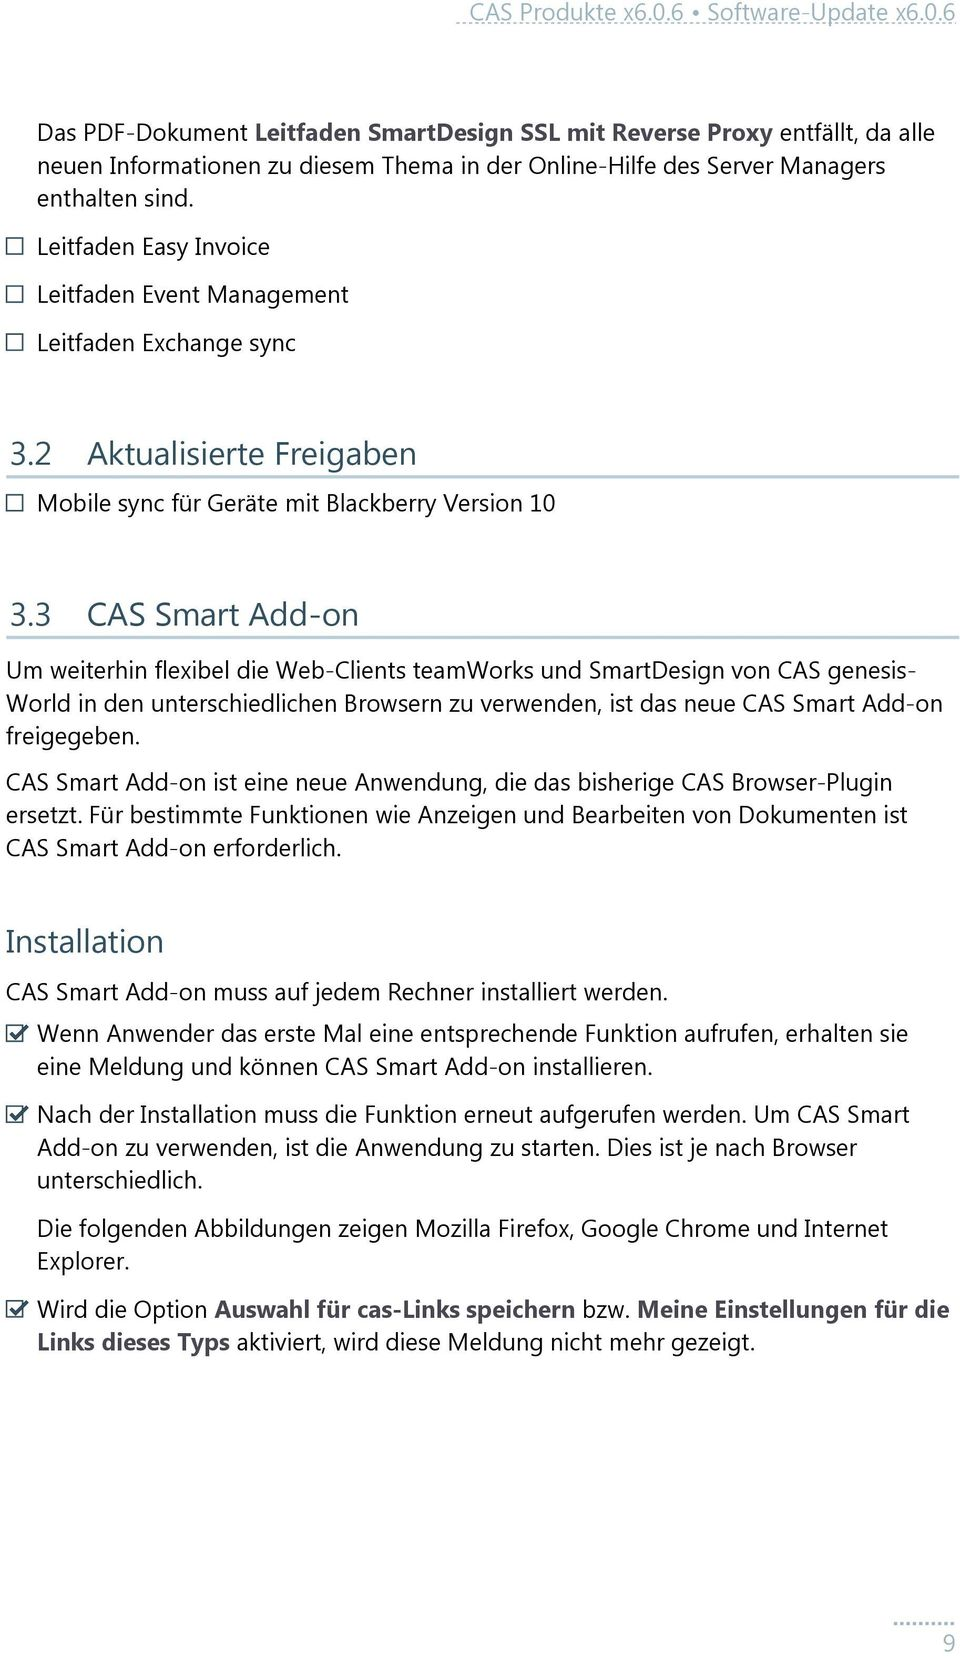 3 CAS Smart Add-on Um weiterhin flexibel die Web-Clients teamworks und SmartDesign von CAS genesis- World in den unterschiedlichen Browsern zu verwenden, ist das neue CAS Smart Add-on freigegeben.